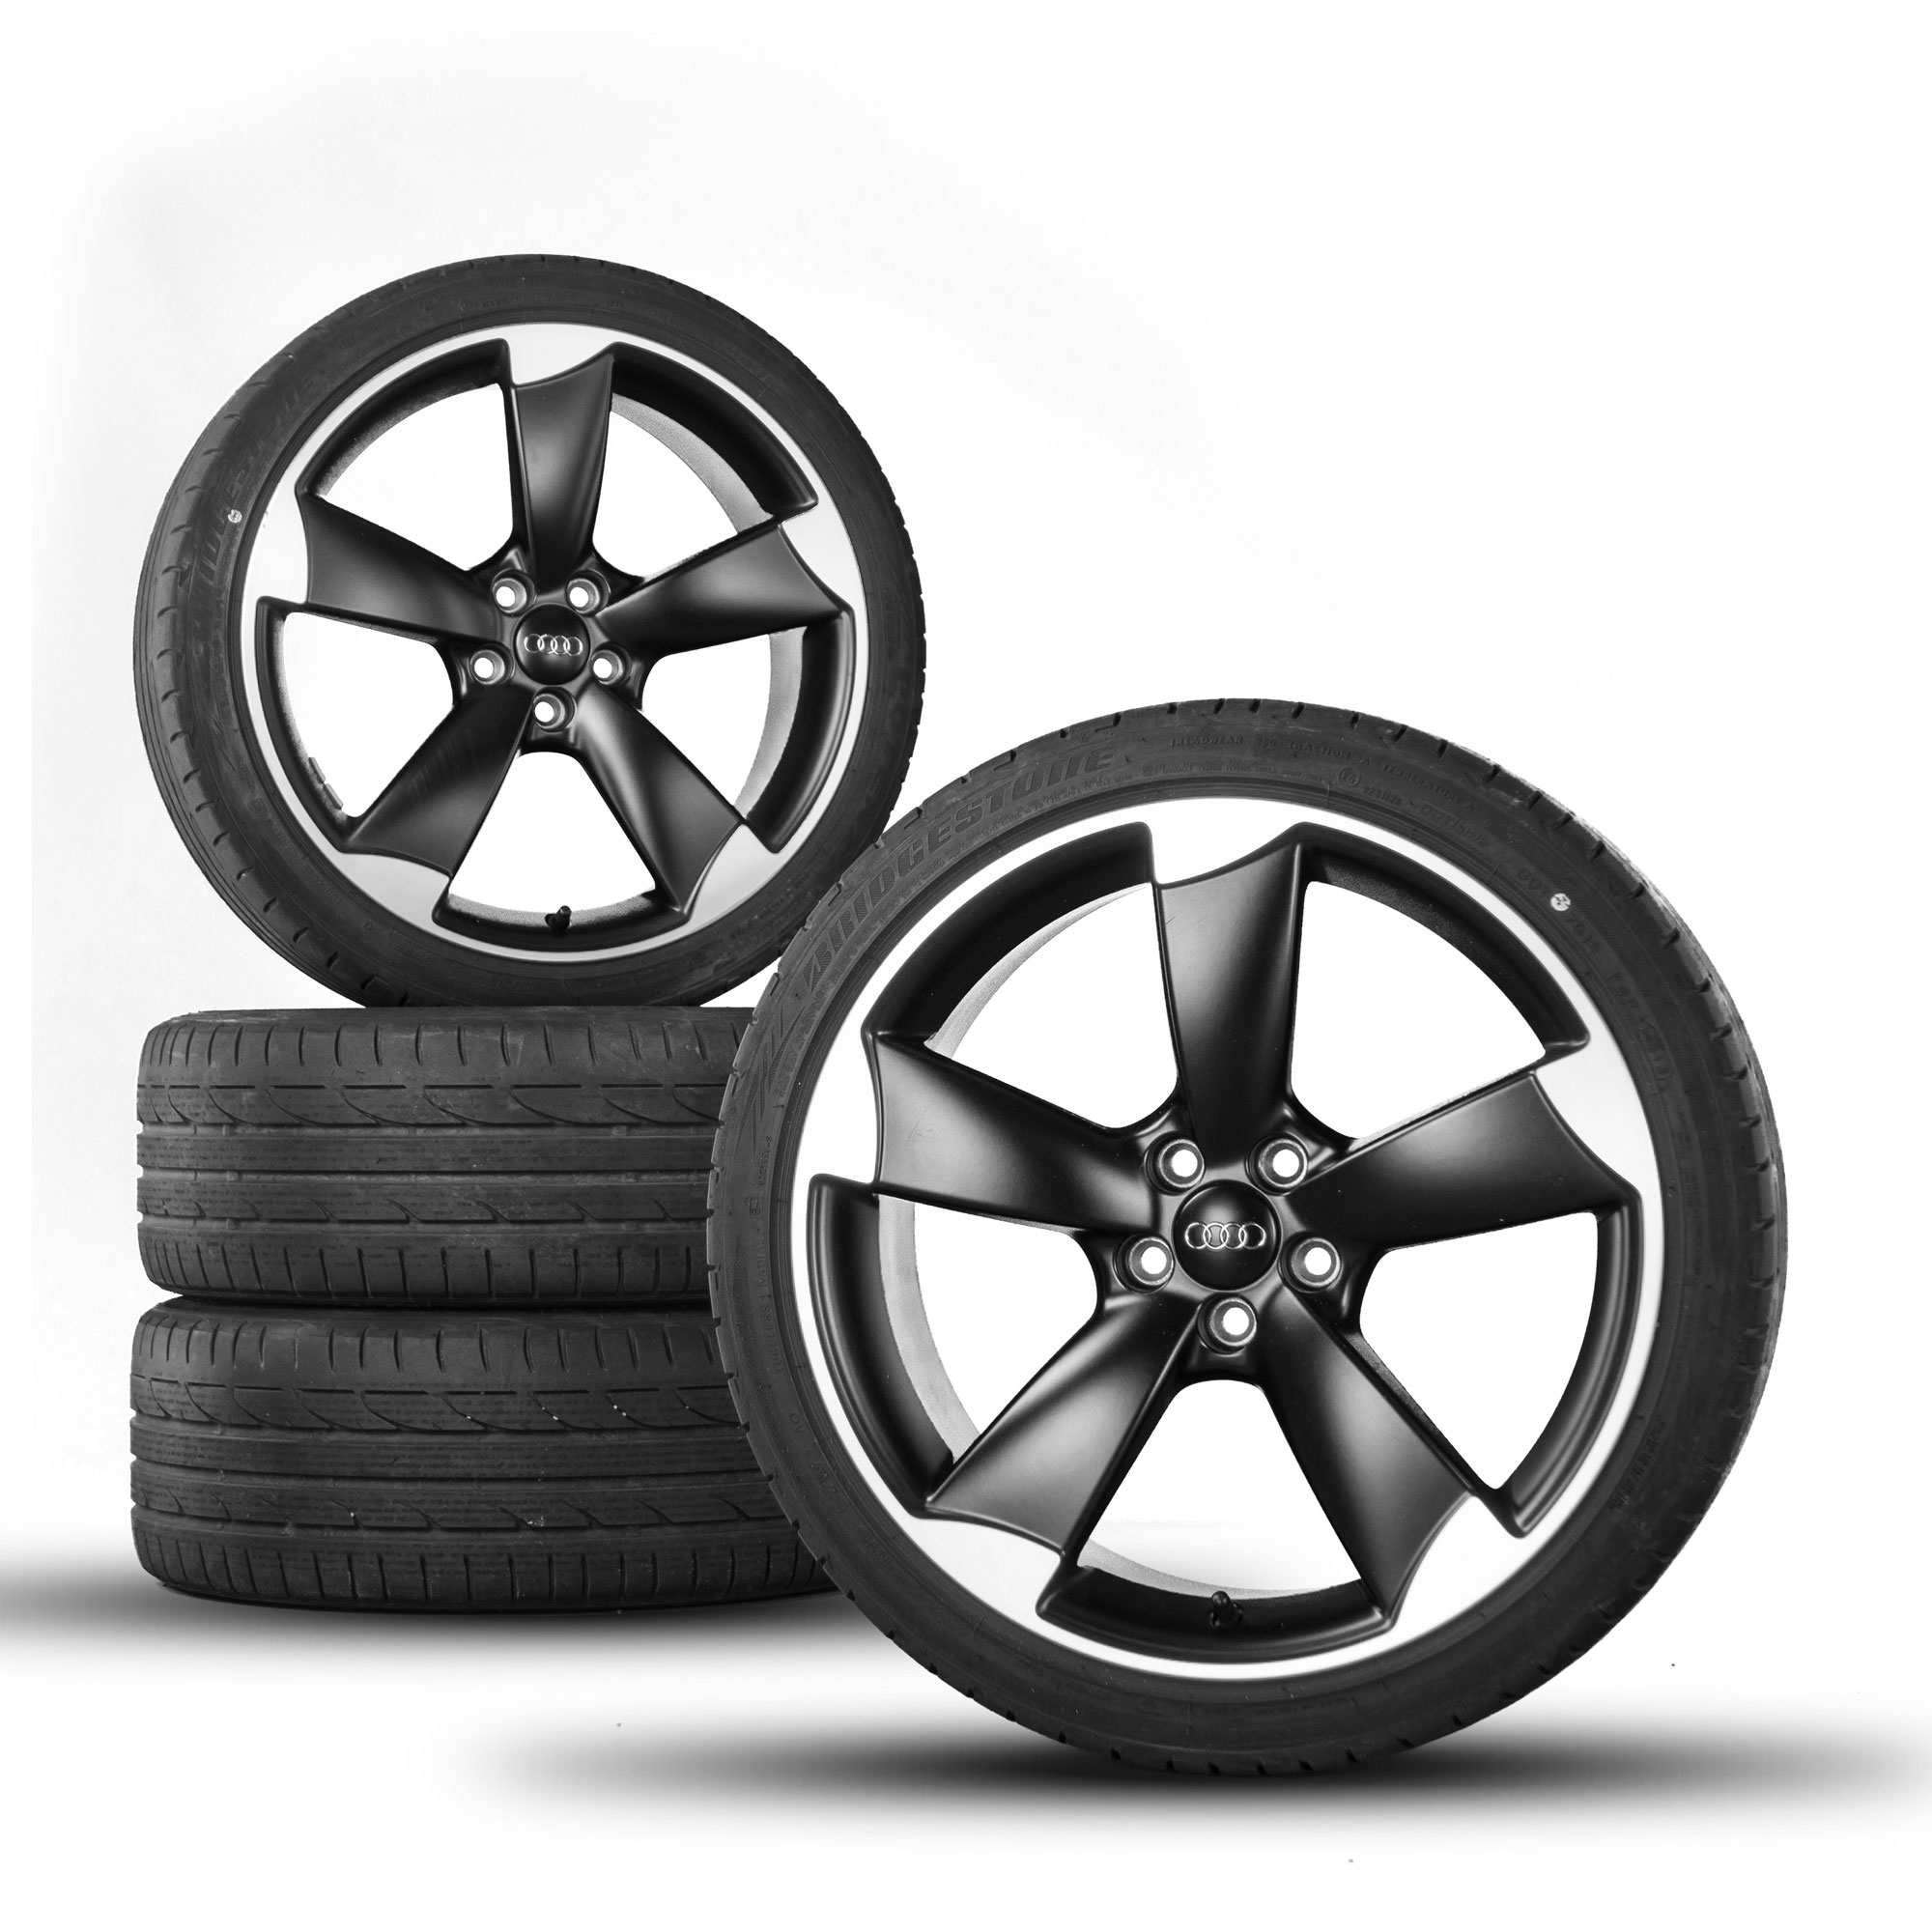 Audi A1 S1 8X 18 Inch Alloy Wheels Rotor S-Line Rims